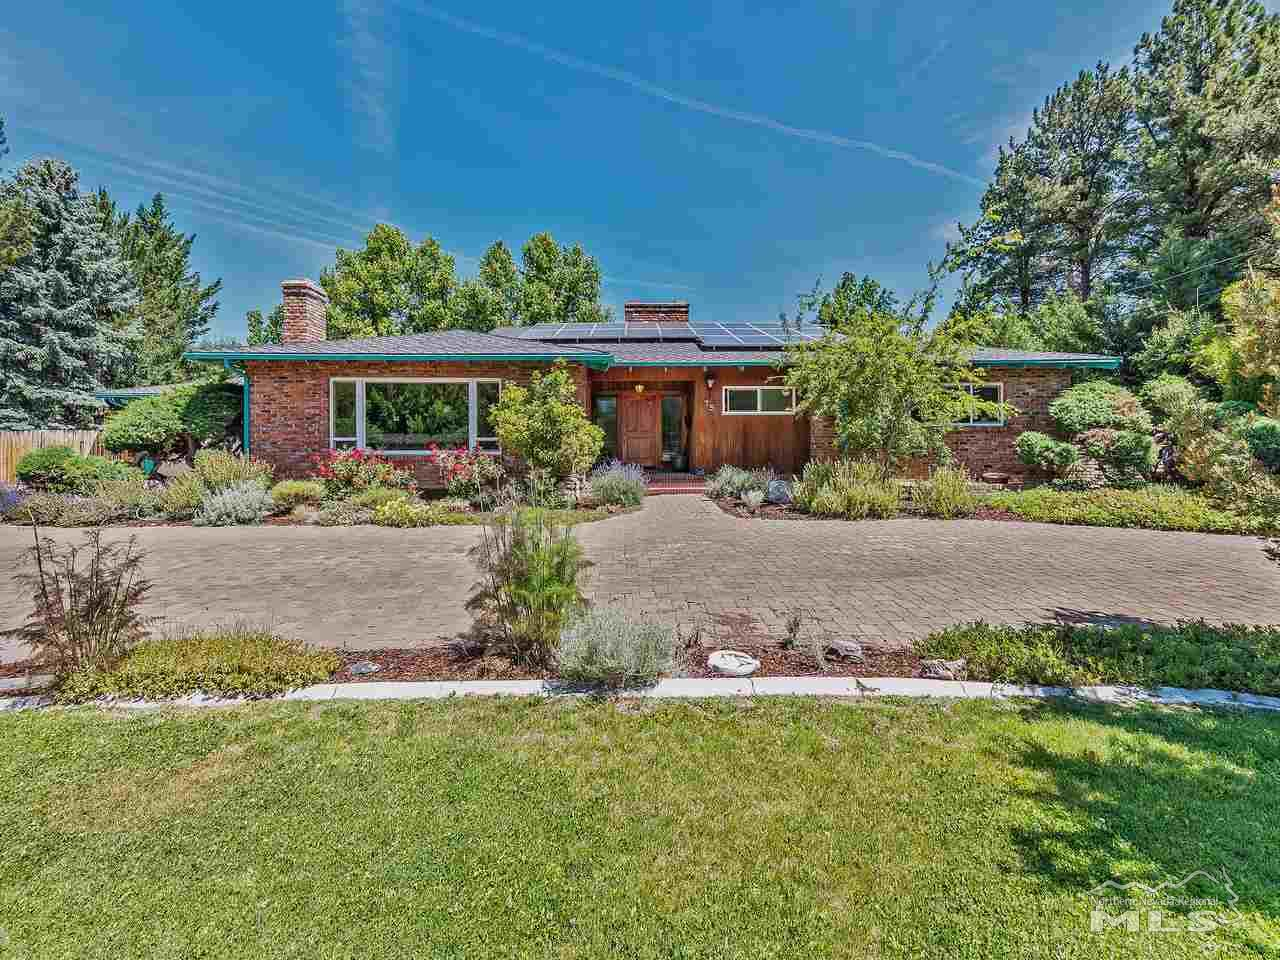 Image for 75 Southridge, Reno, NV 89509